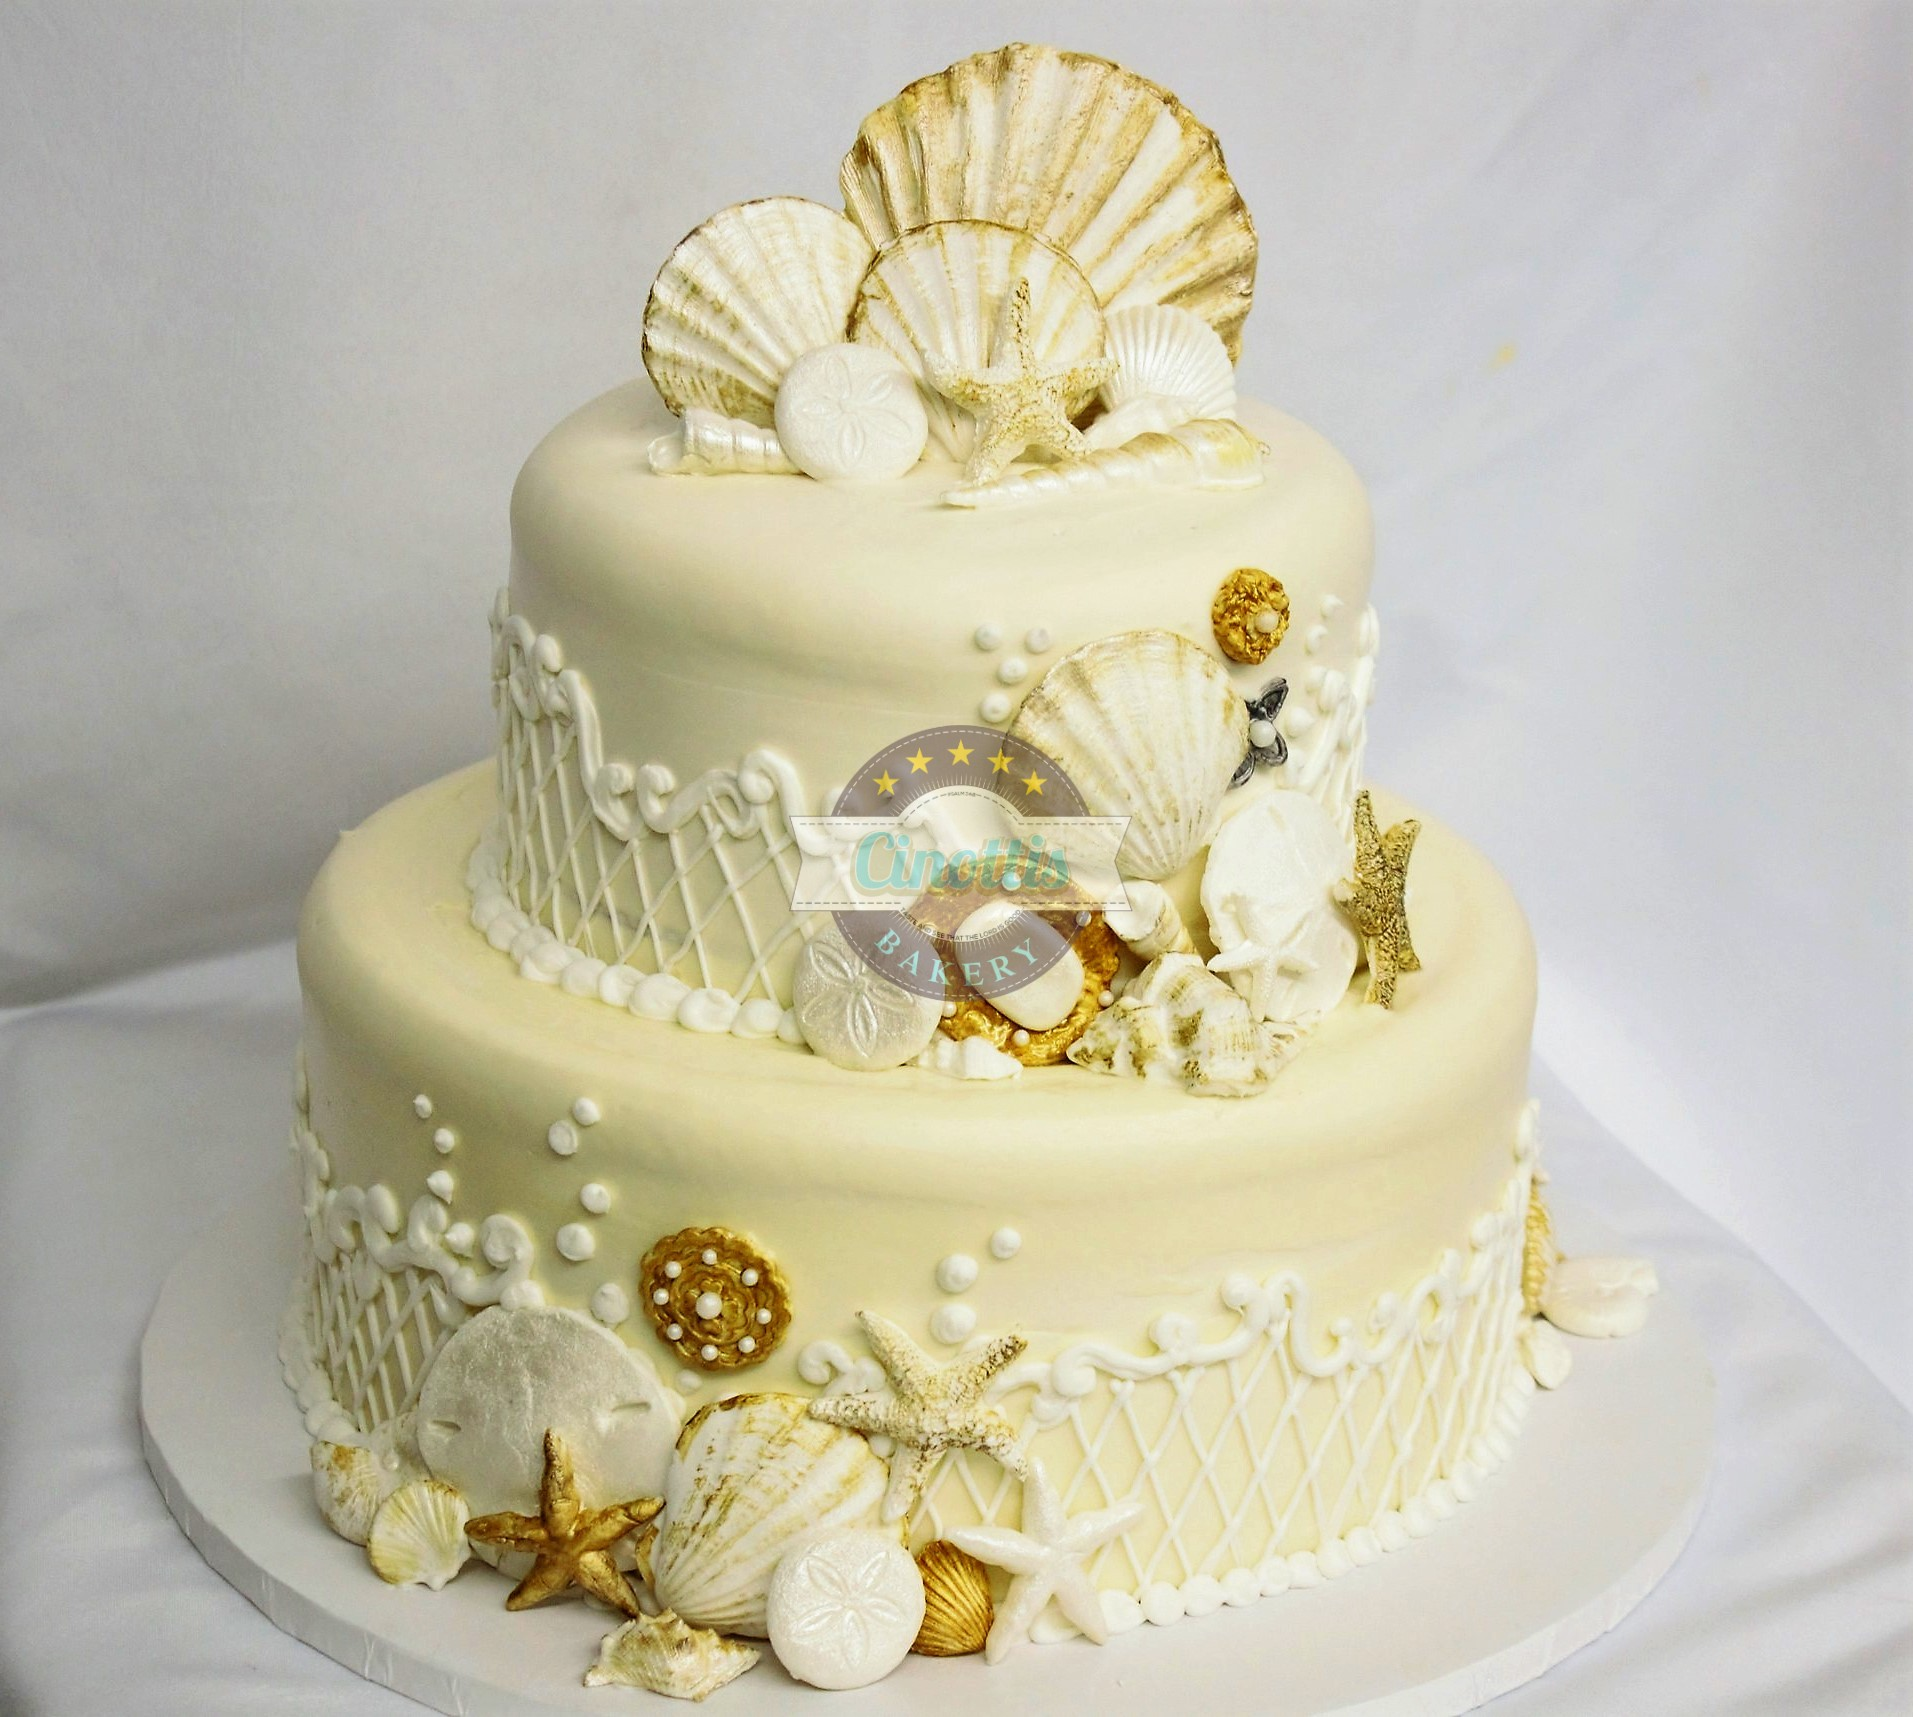 Seashells Wedding, Beach, Gold, Antique, Starfish, Sand, Cinottis, Bakery, Jacksonville, Beach